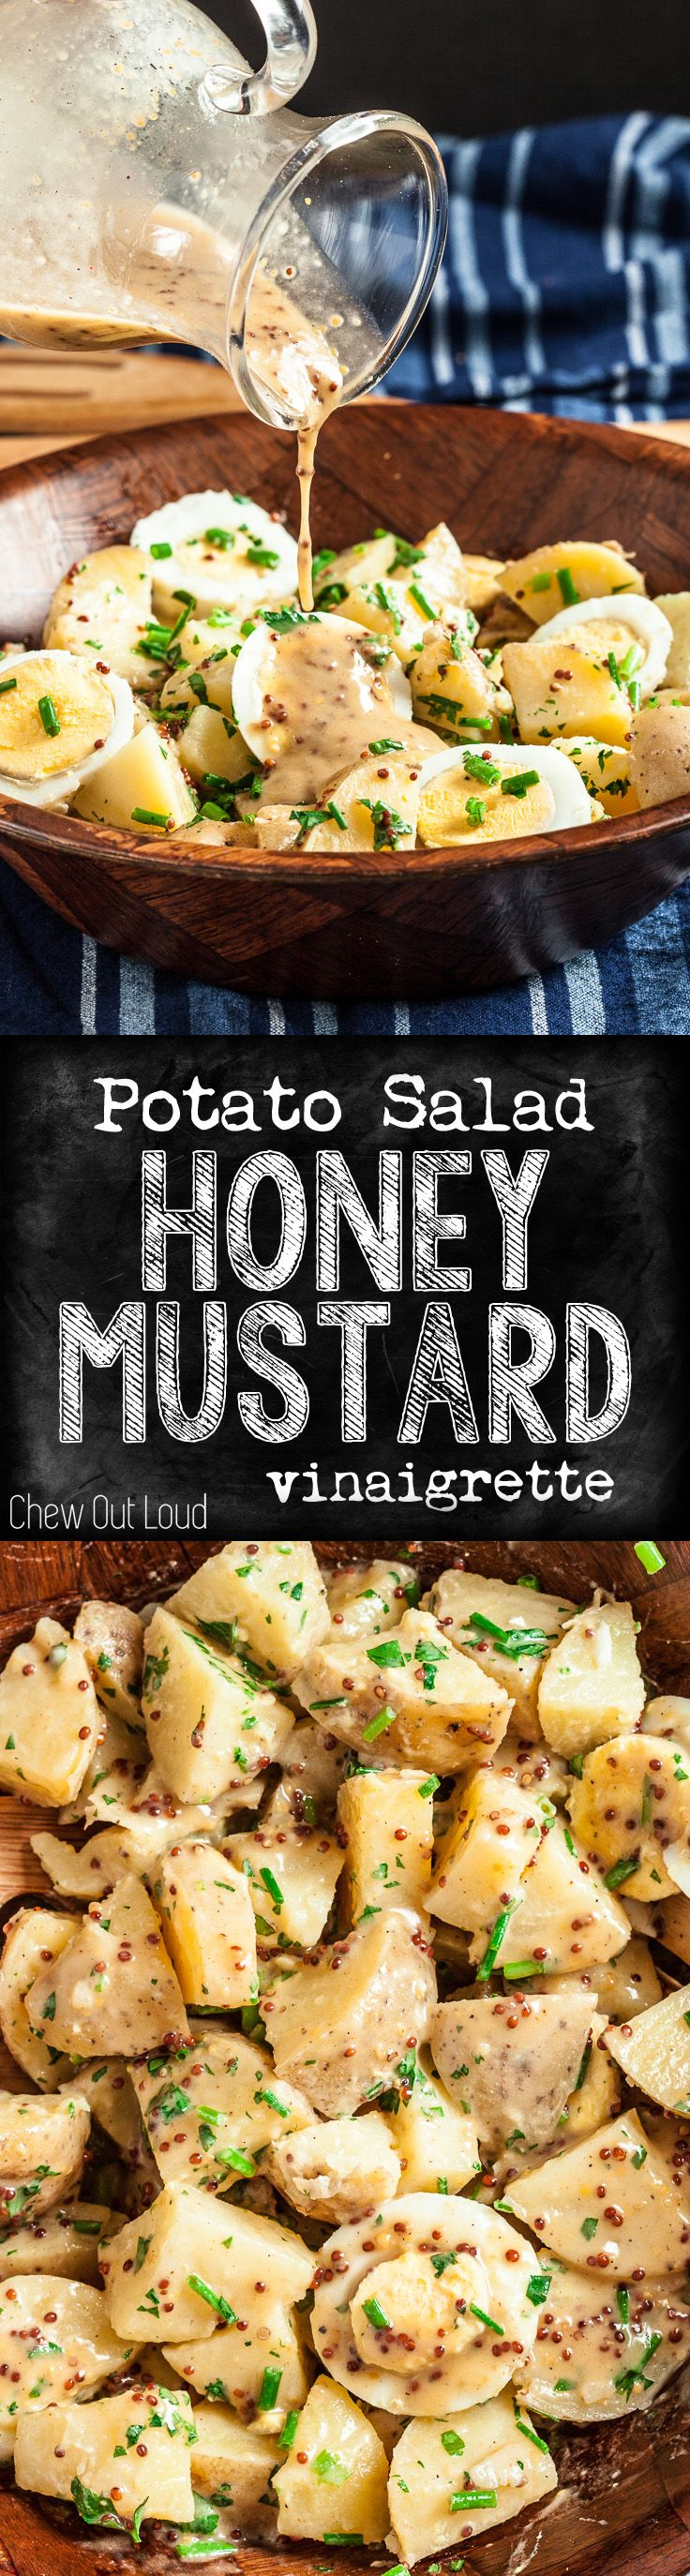 Zippy, Tangy, Creamy, Yummy, and even Skinny. A delicious new twist on the old potato salad. #healthy #potato #salad